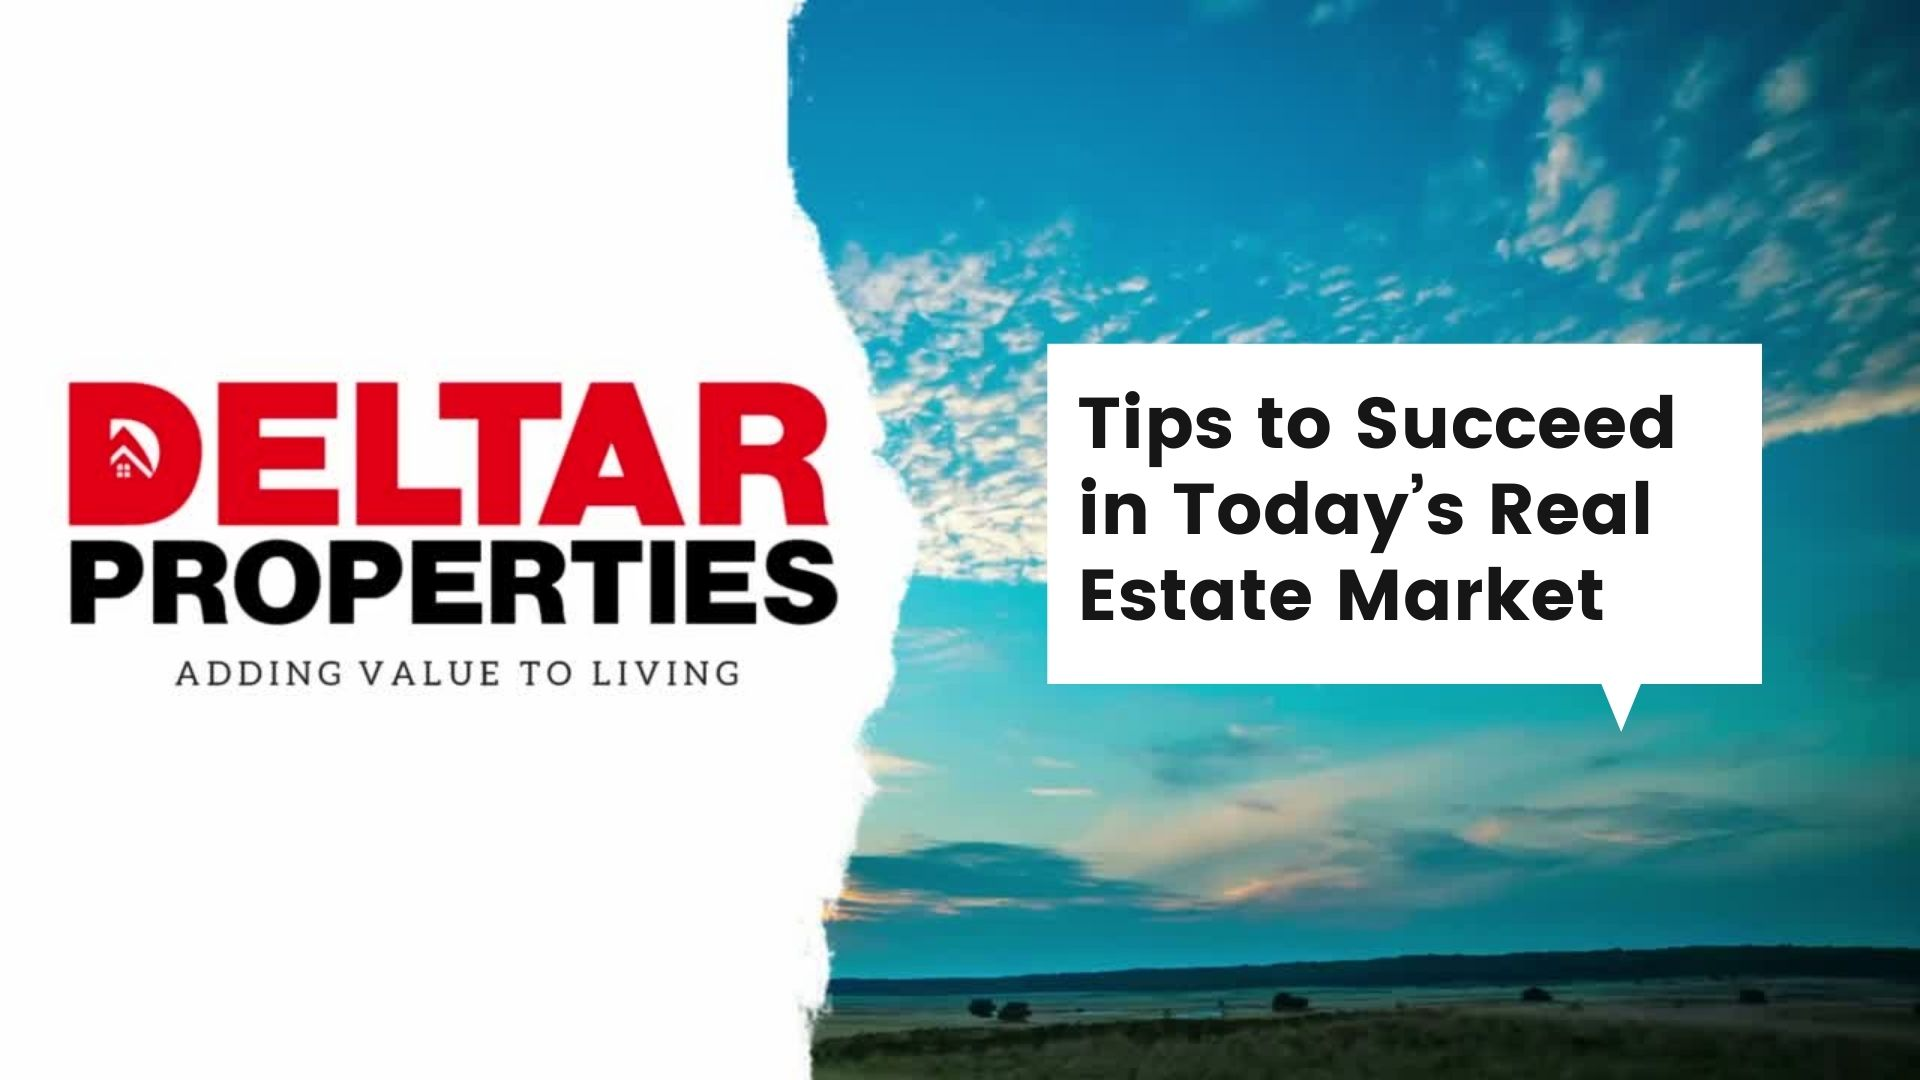 Tips to Succeed in Today's Real Estate Market